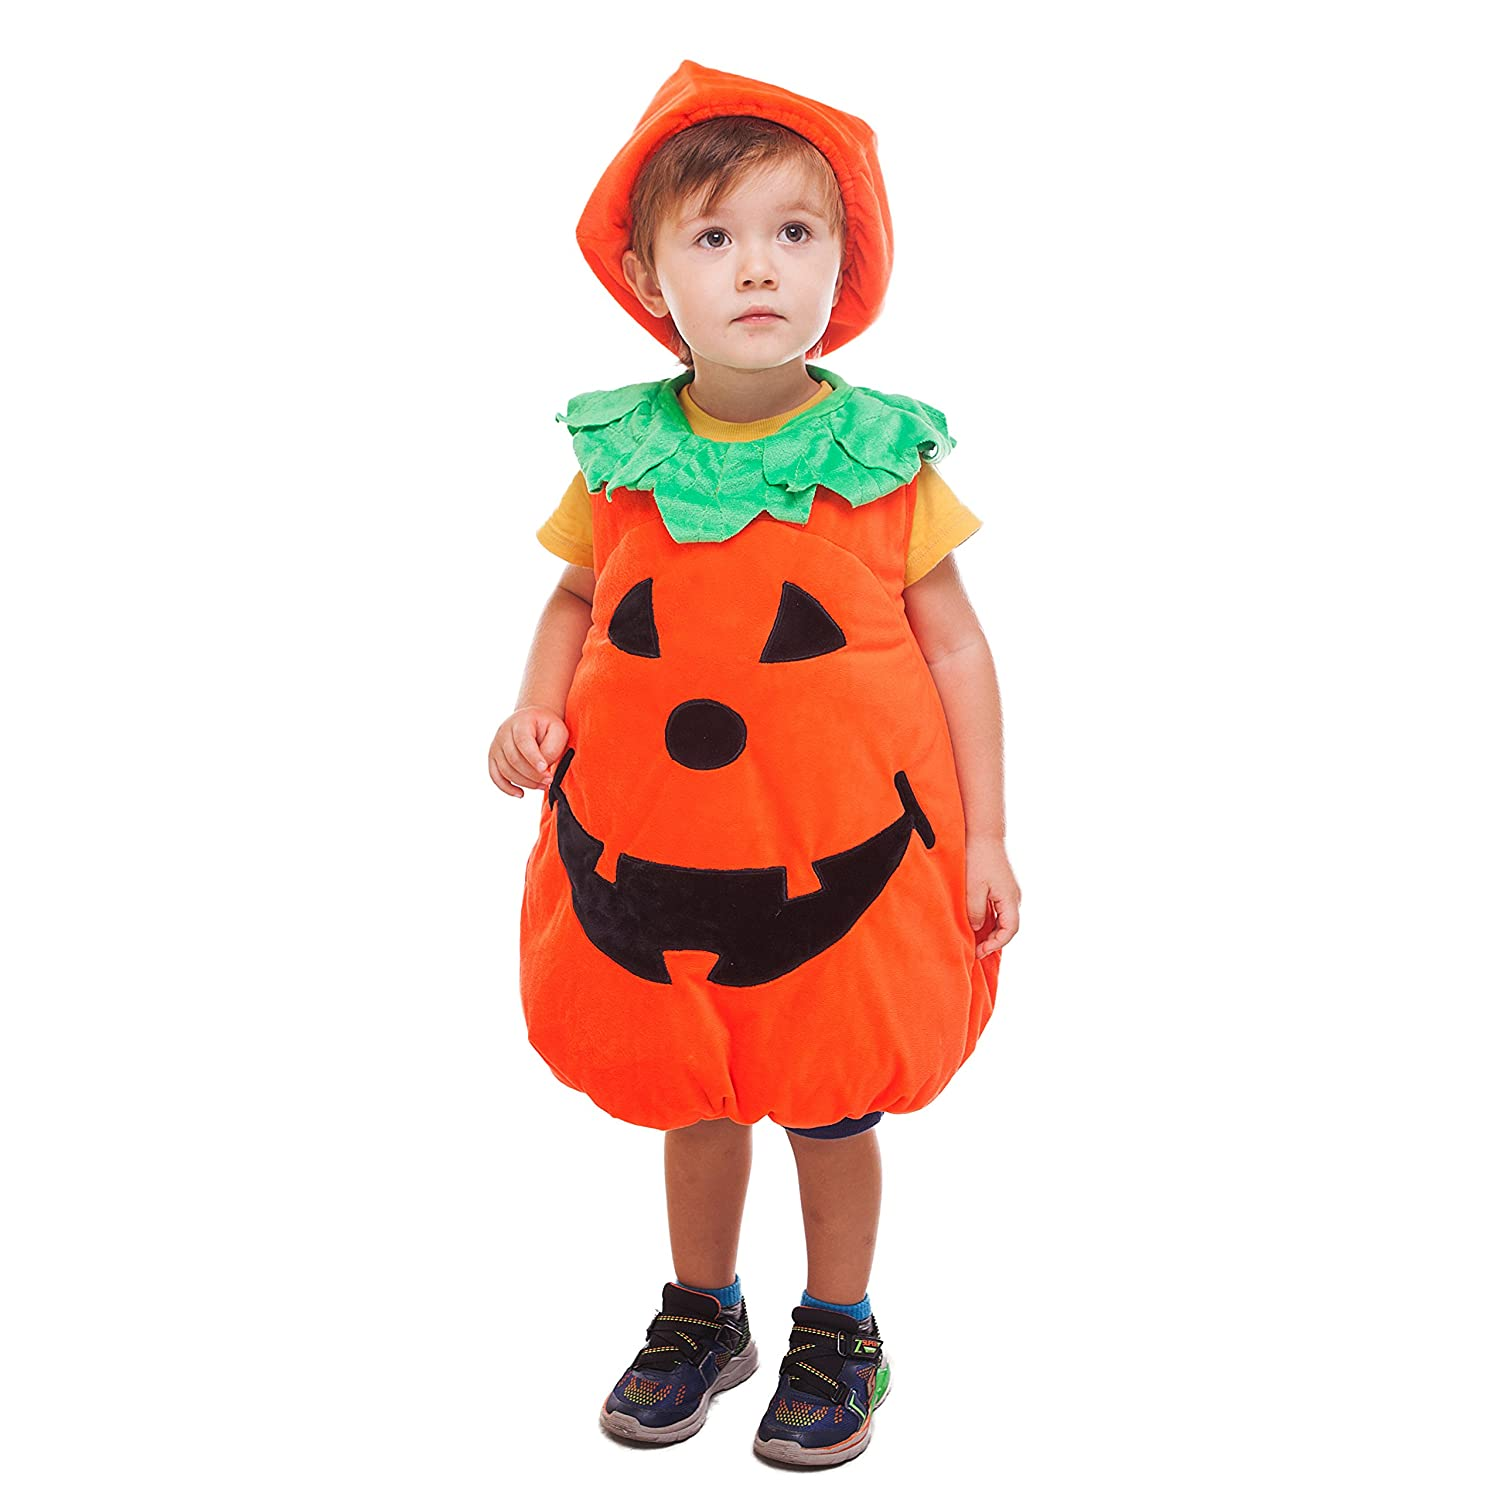 WEWILL Halloween Orange Pumpkin Patch Cutie Unisex Costume Set for Party Children Clothing Fancy Dress Up 3-4year